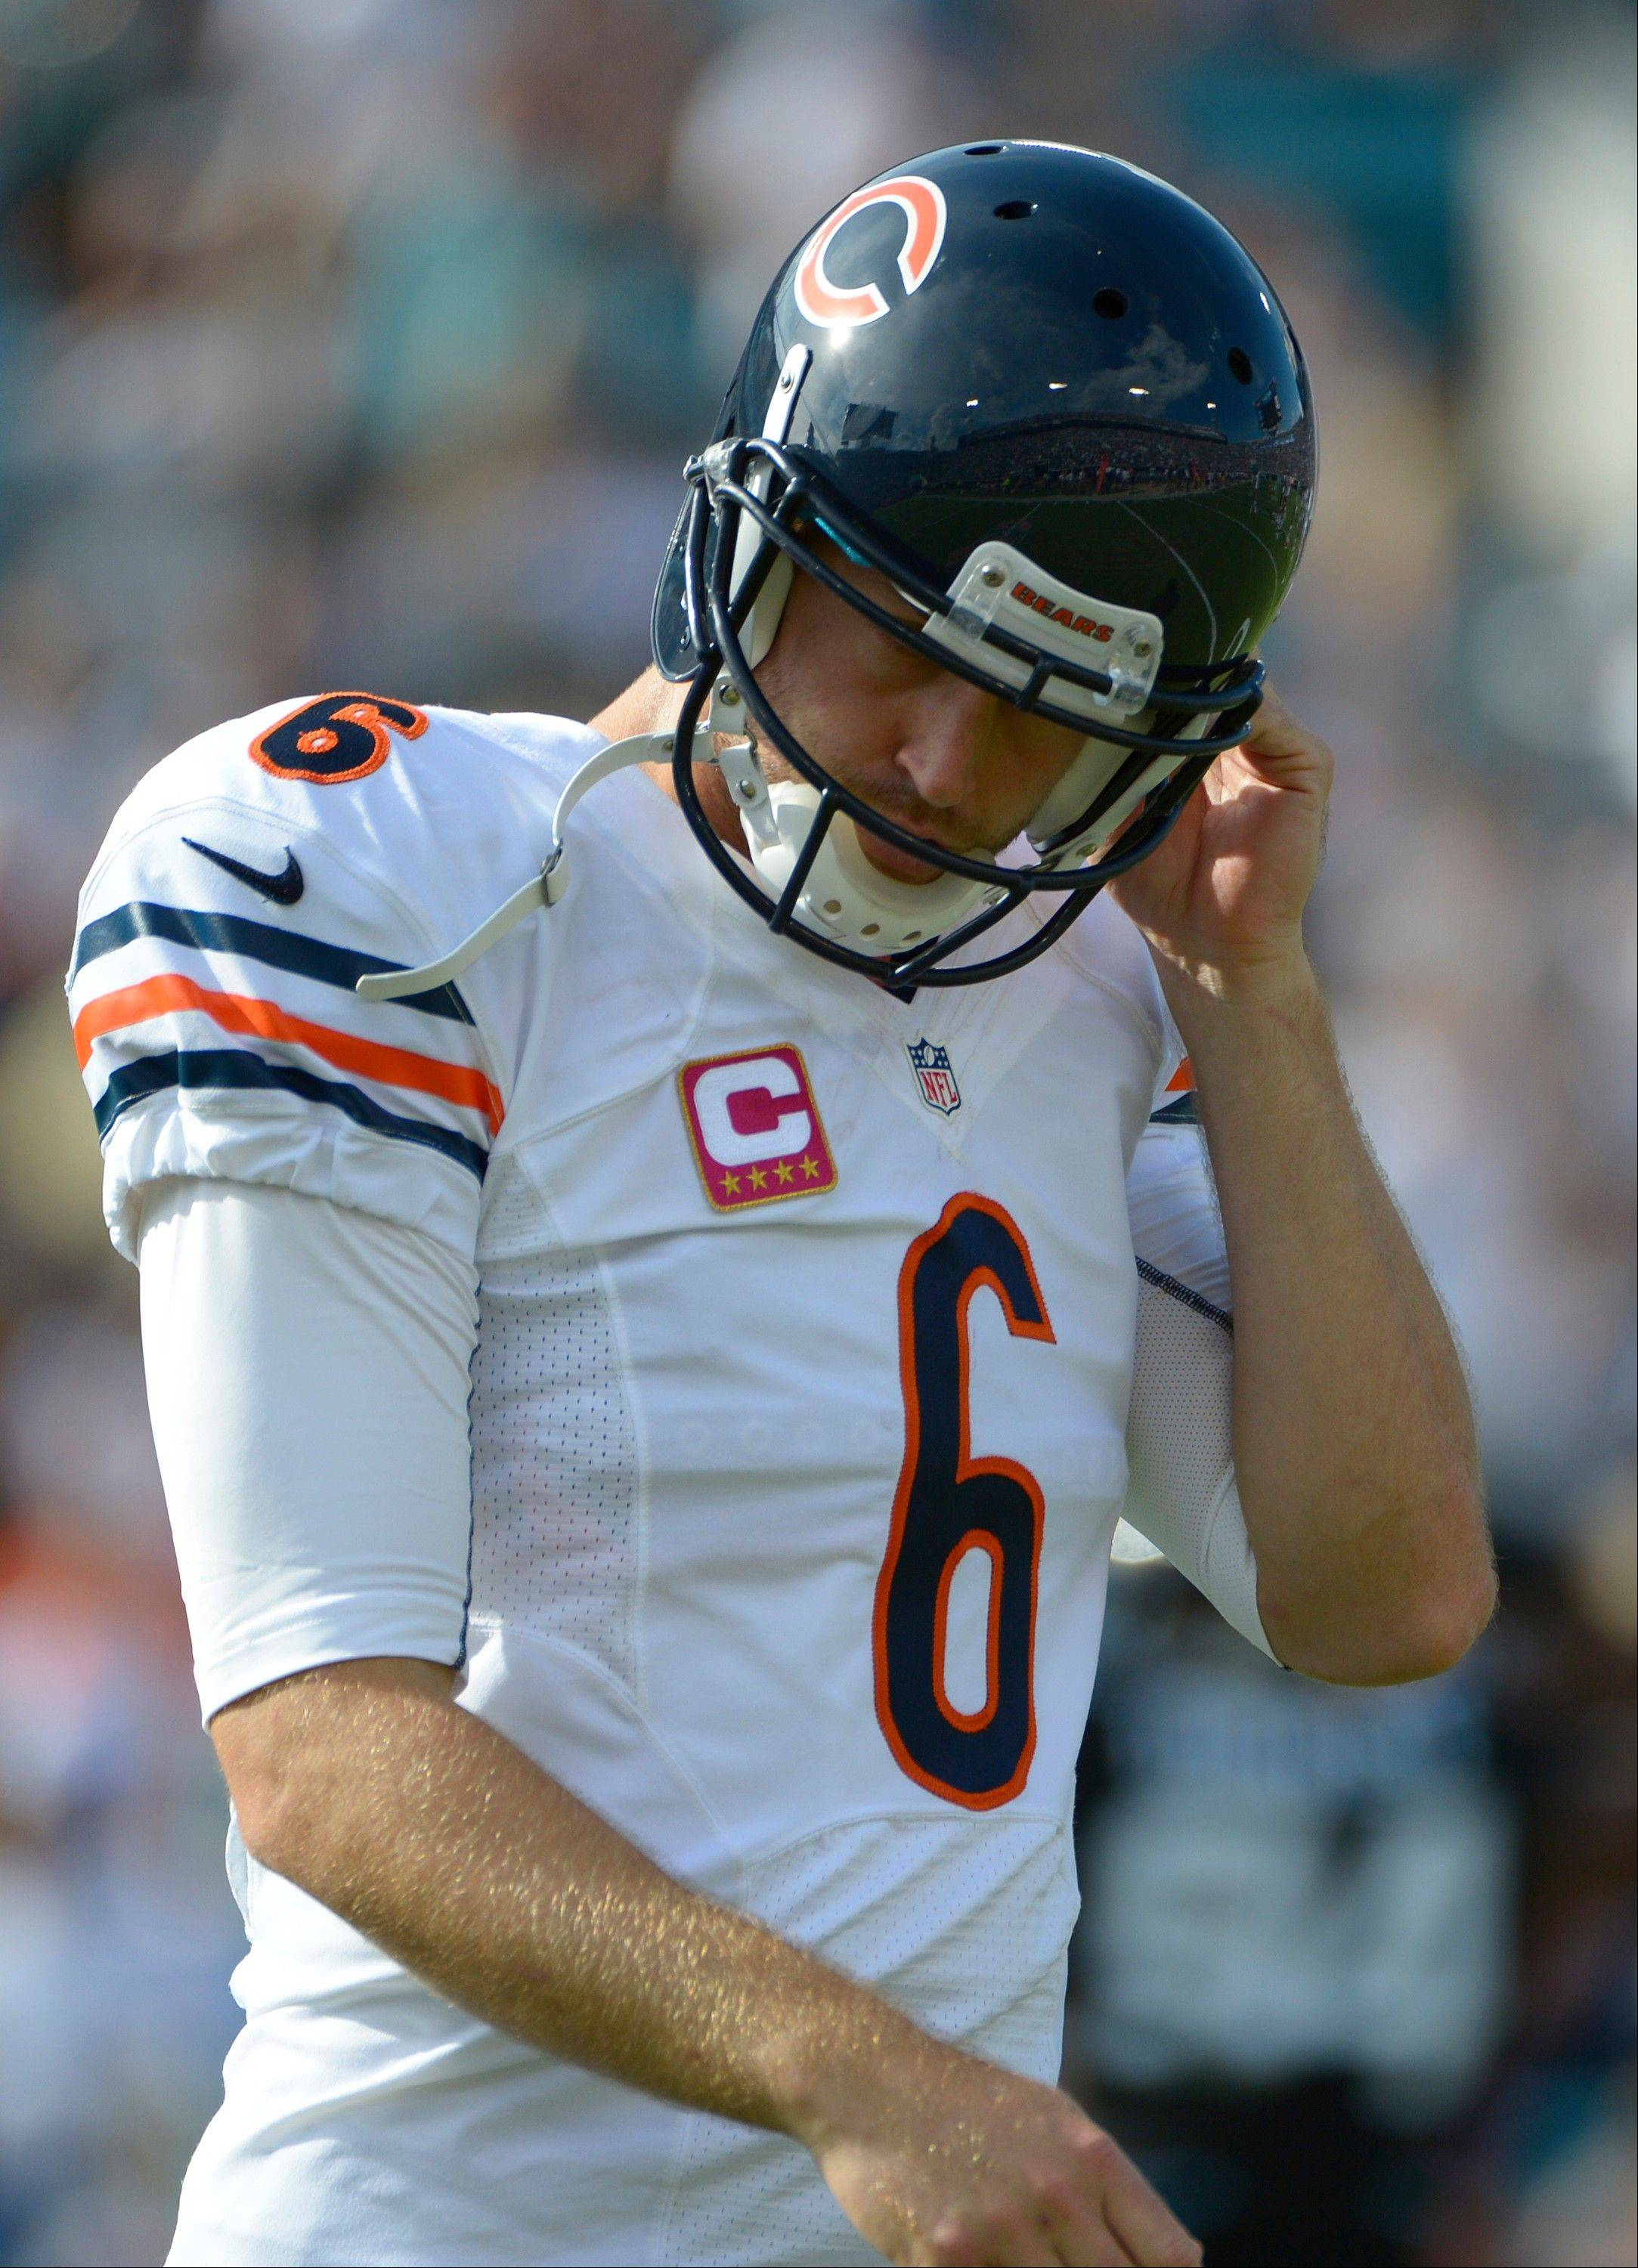 Chicago Bears quarterback Jay Cutler walks off the field after throwing an interception against the Jacksonville Jaguars during the first half, Sunday, in Jacksonville, Fla.